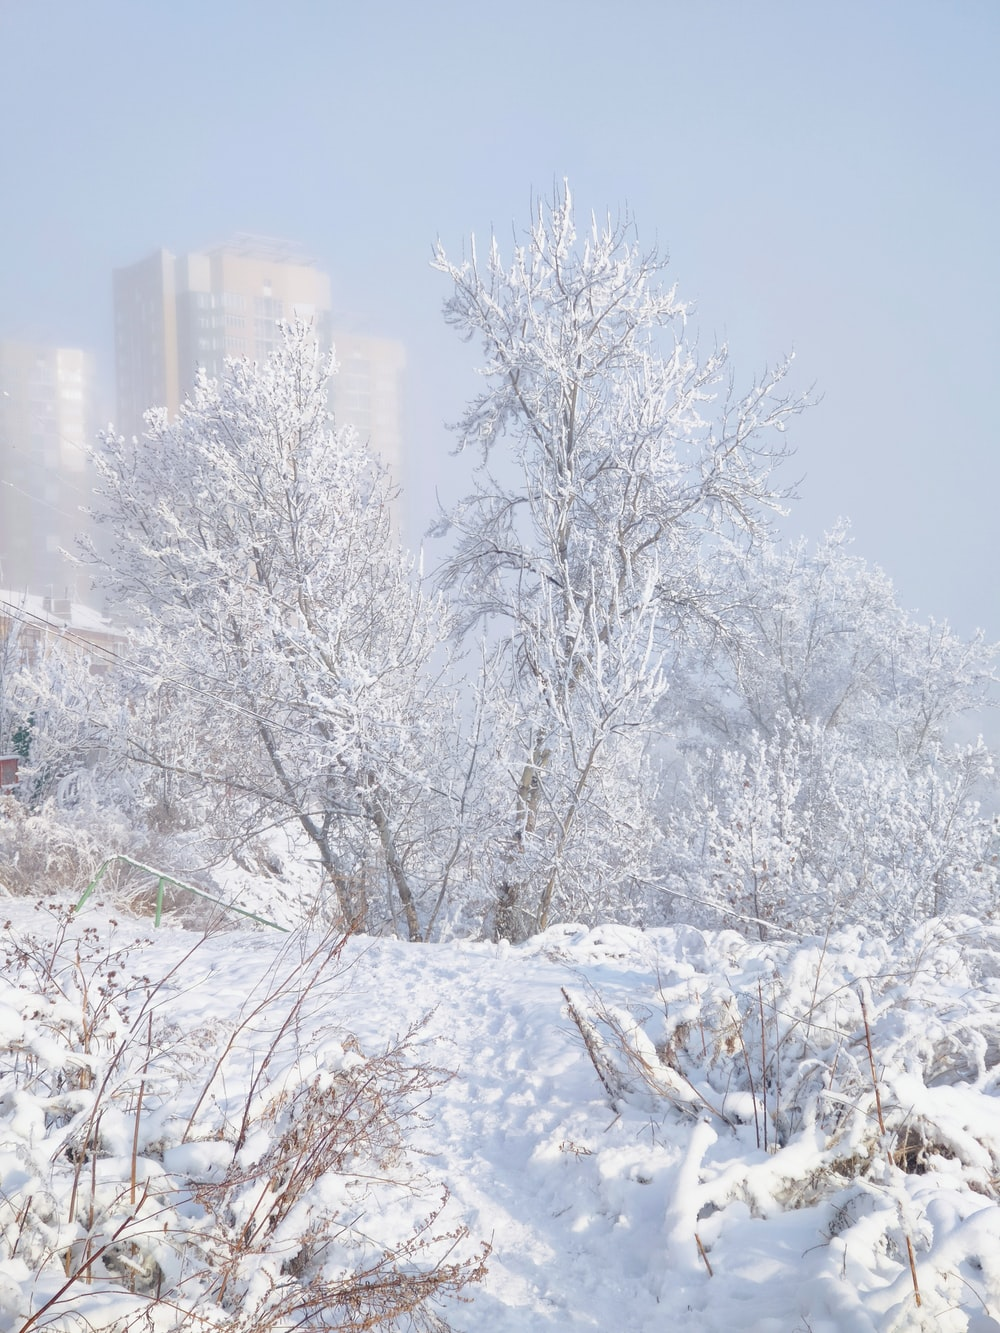 snow covered trees and buildings during daytime